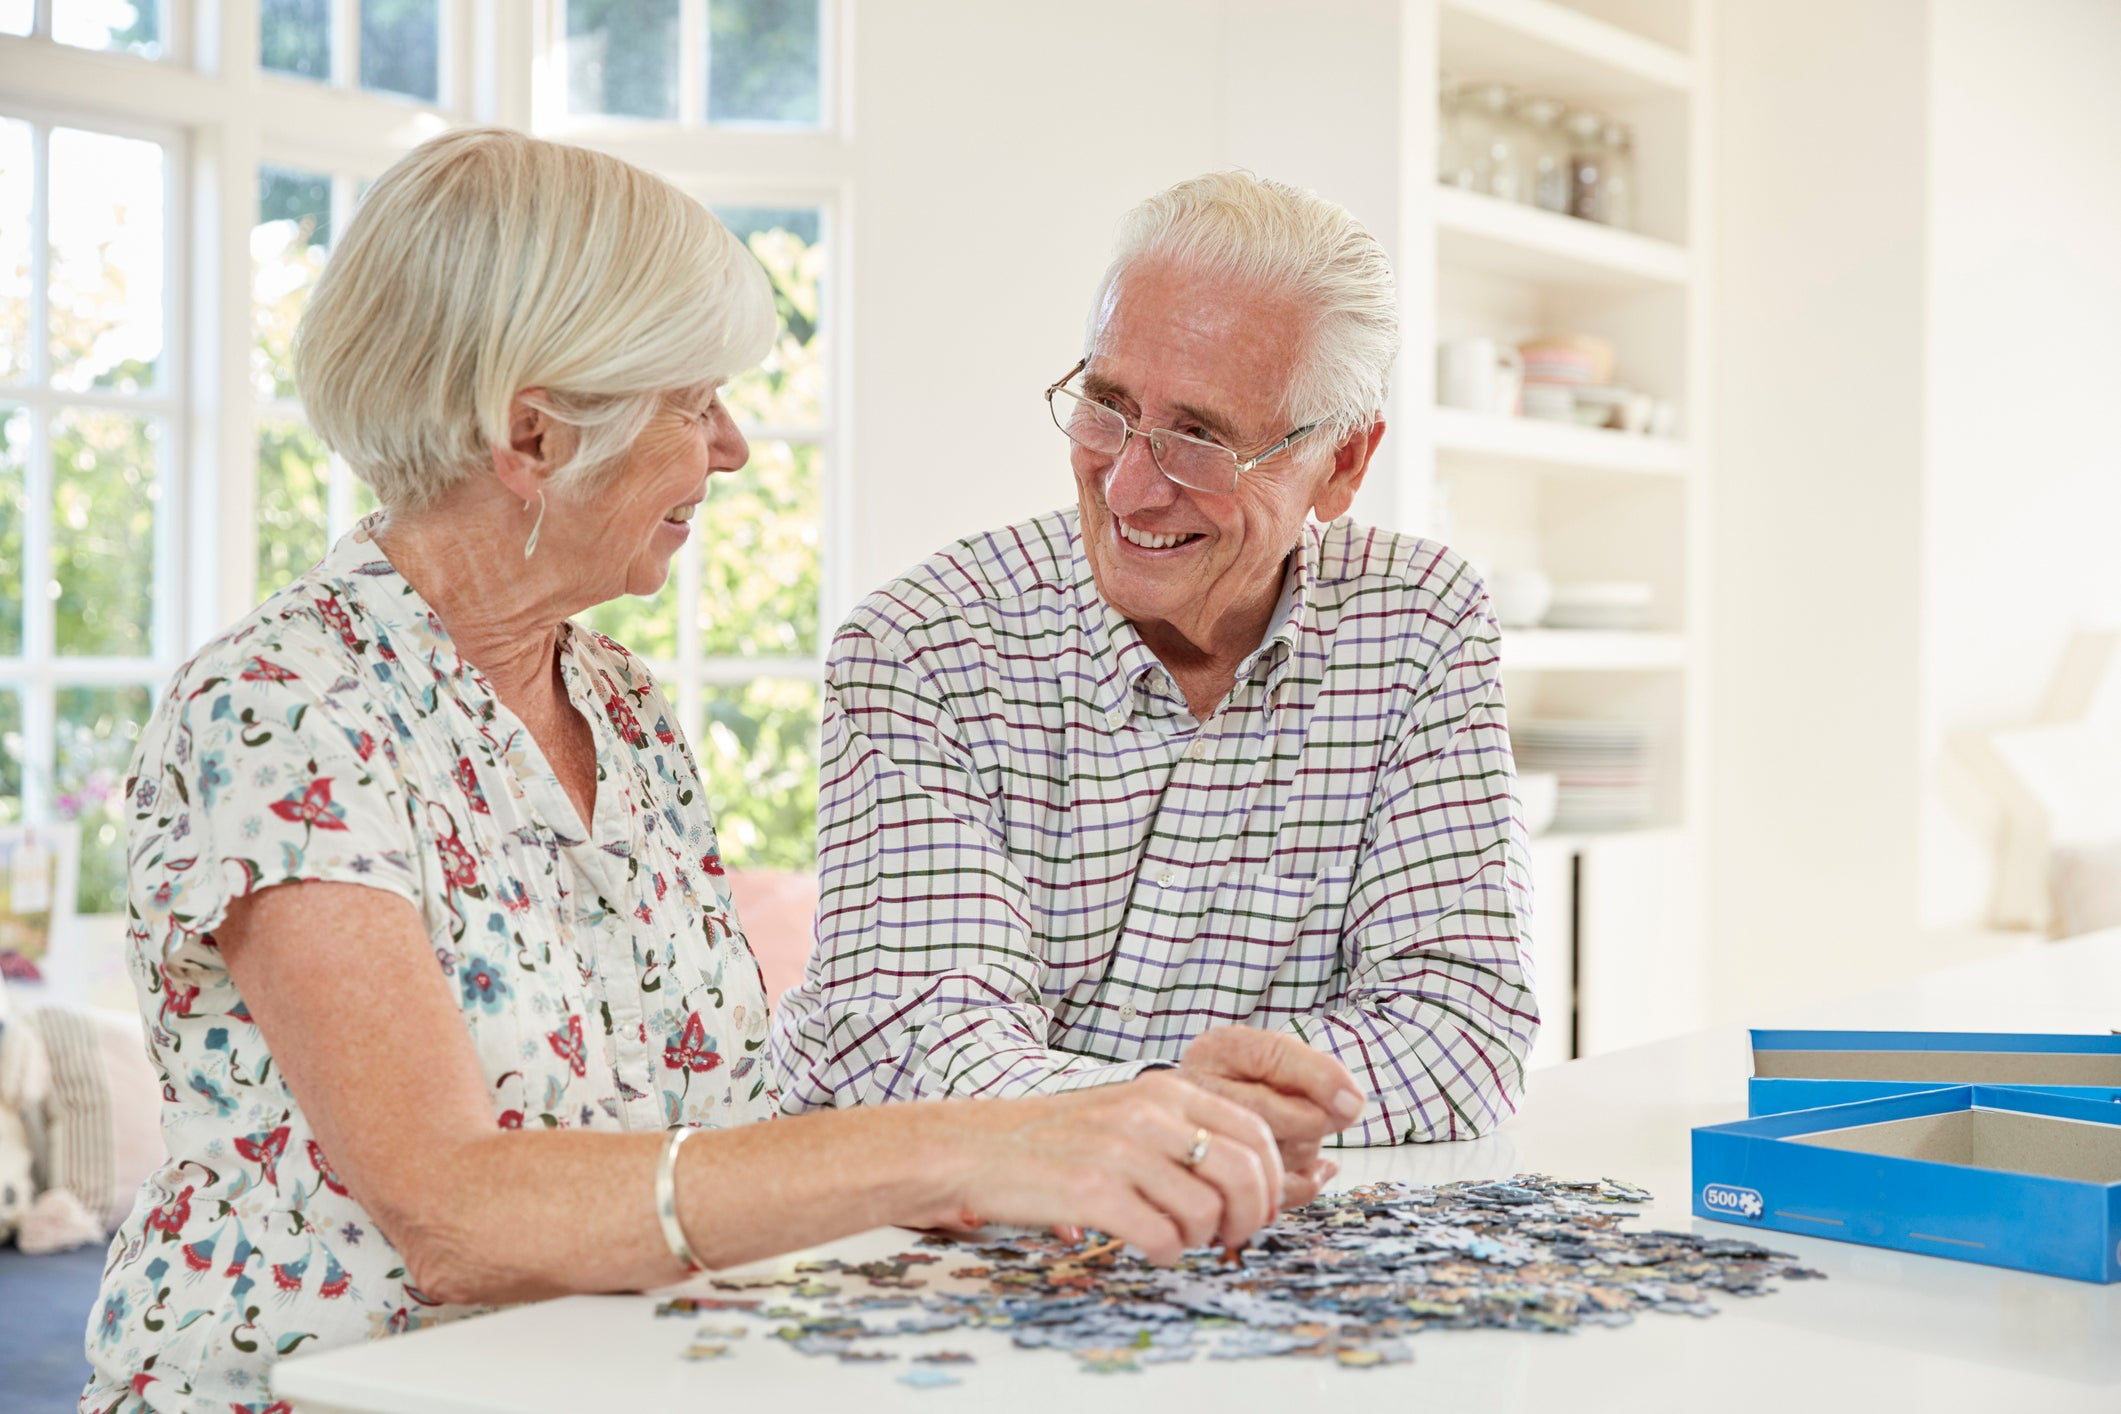 Senior couple seated at a table, doing a puzzle.